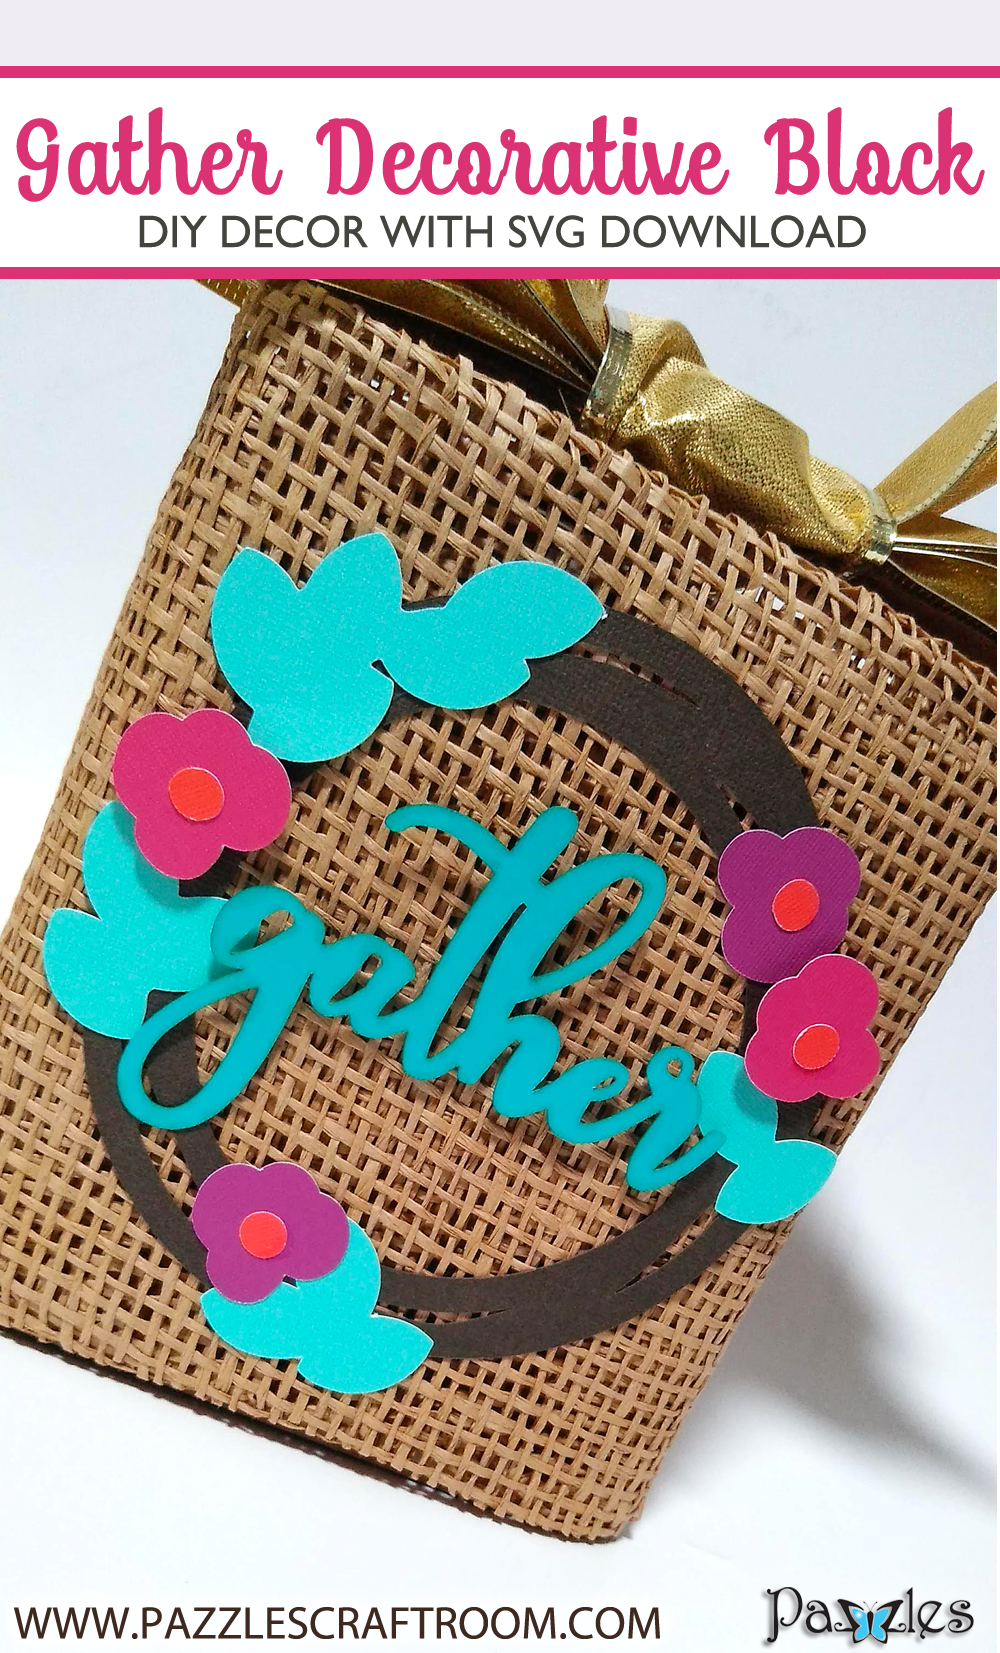 Pazzles DIY Gather Decorative Block with instant SVG download. Compatible with all major electronic cutters including Pazzles Inspiration, Cricut, and Silhouette Cameo. Design by Renee Smart.